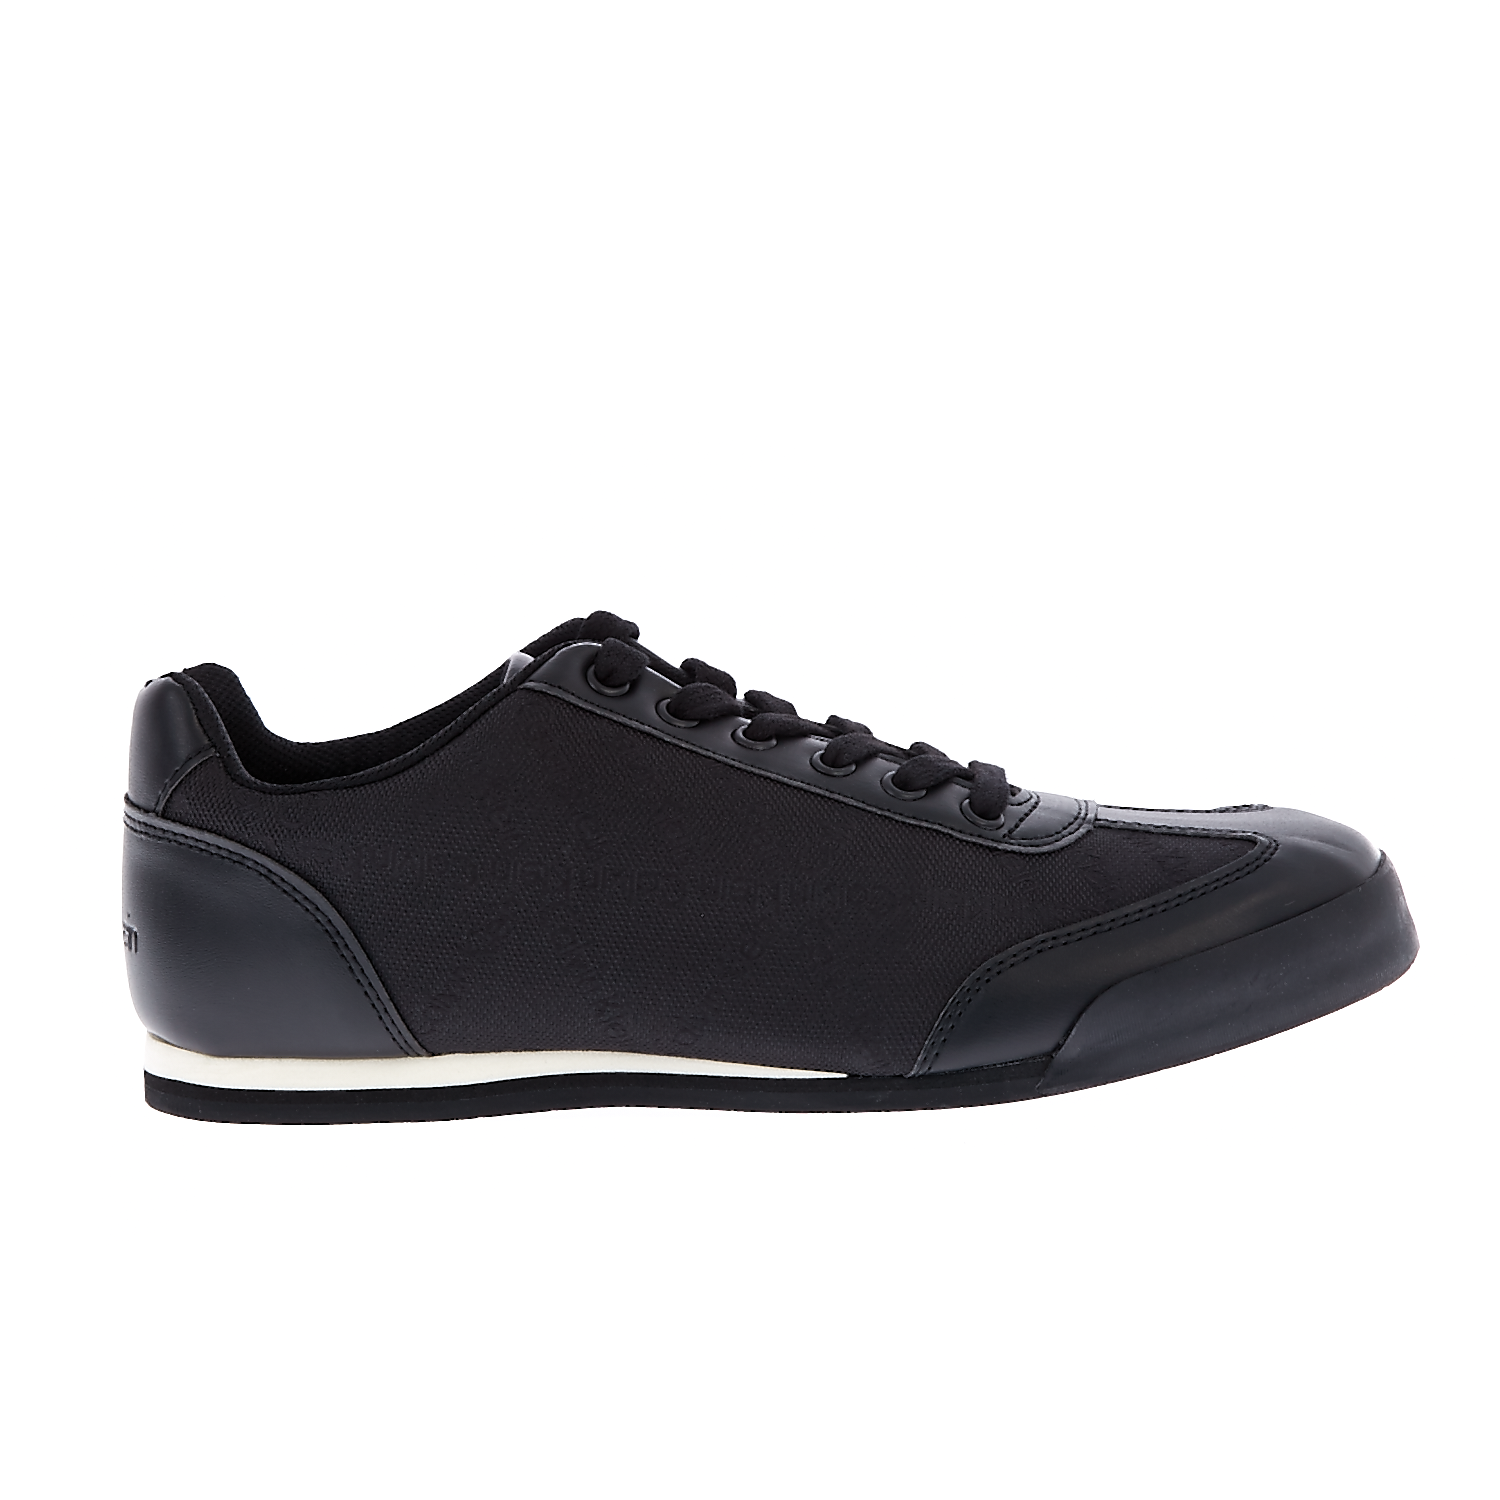 CALVIN KLEIN JEANS – Ανδρικά sneakers CALVIN KLEIN JEANS CALE μαύρα